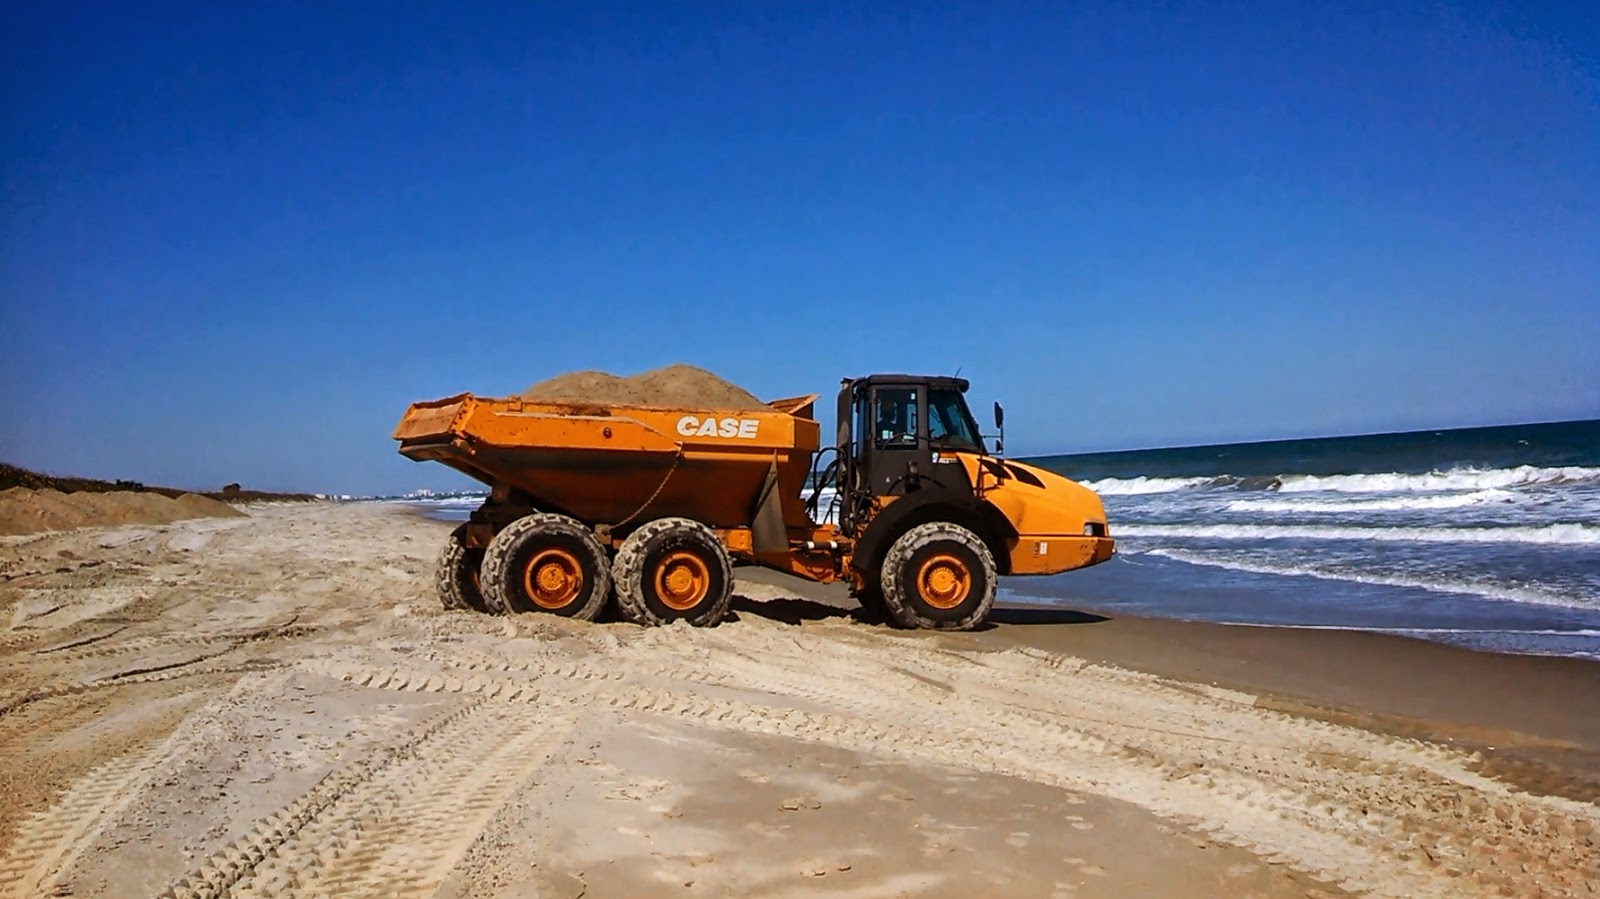 Beach Re-nourishment Hurricane Sandy